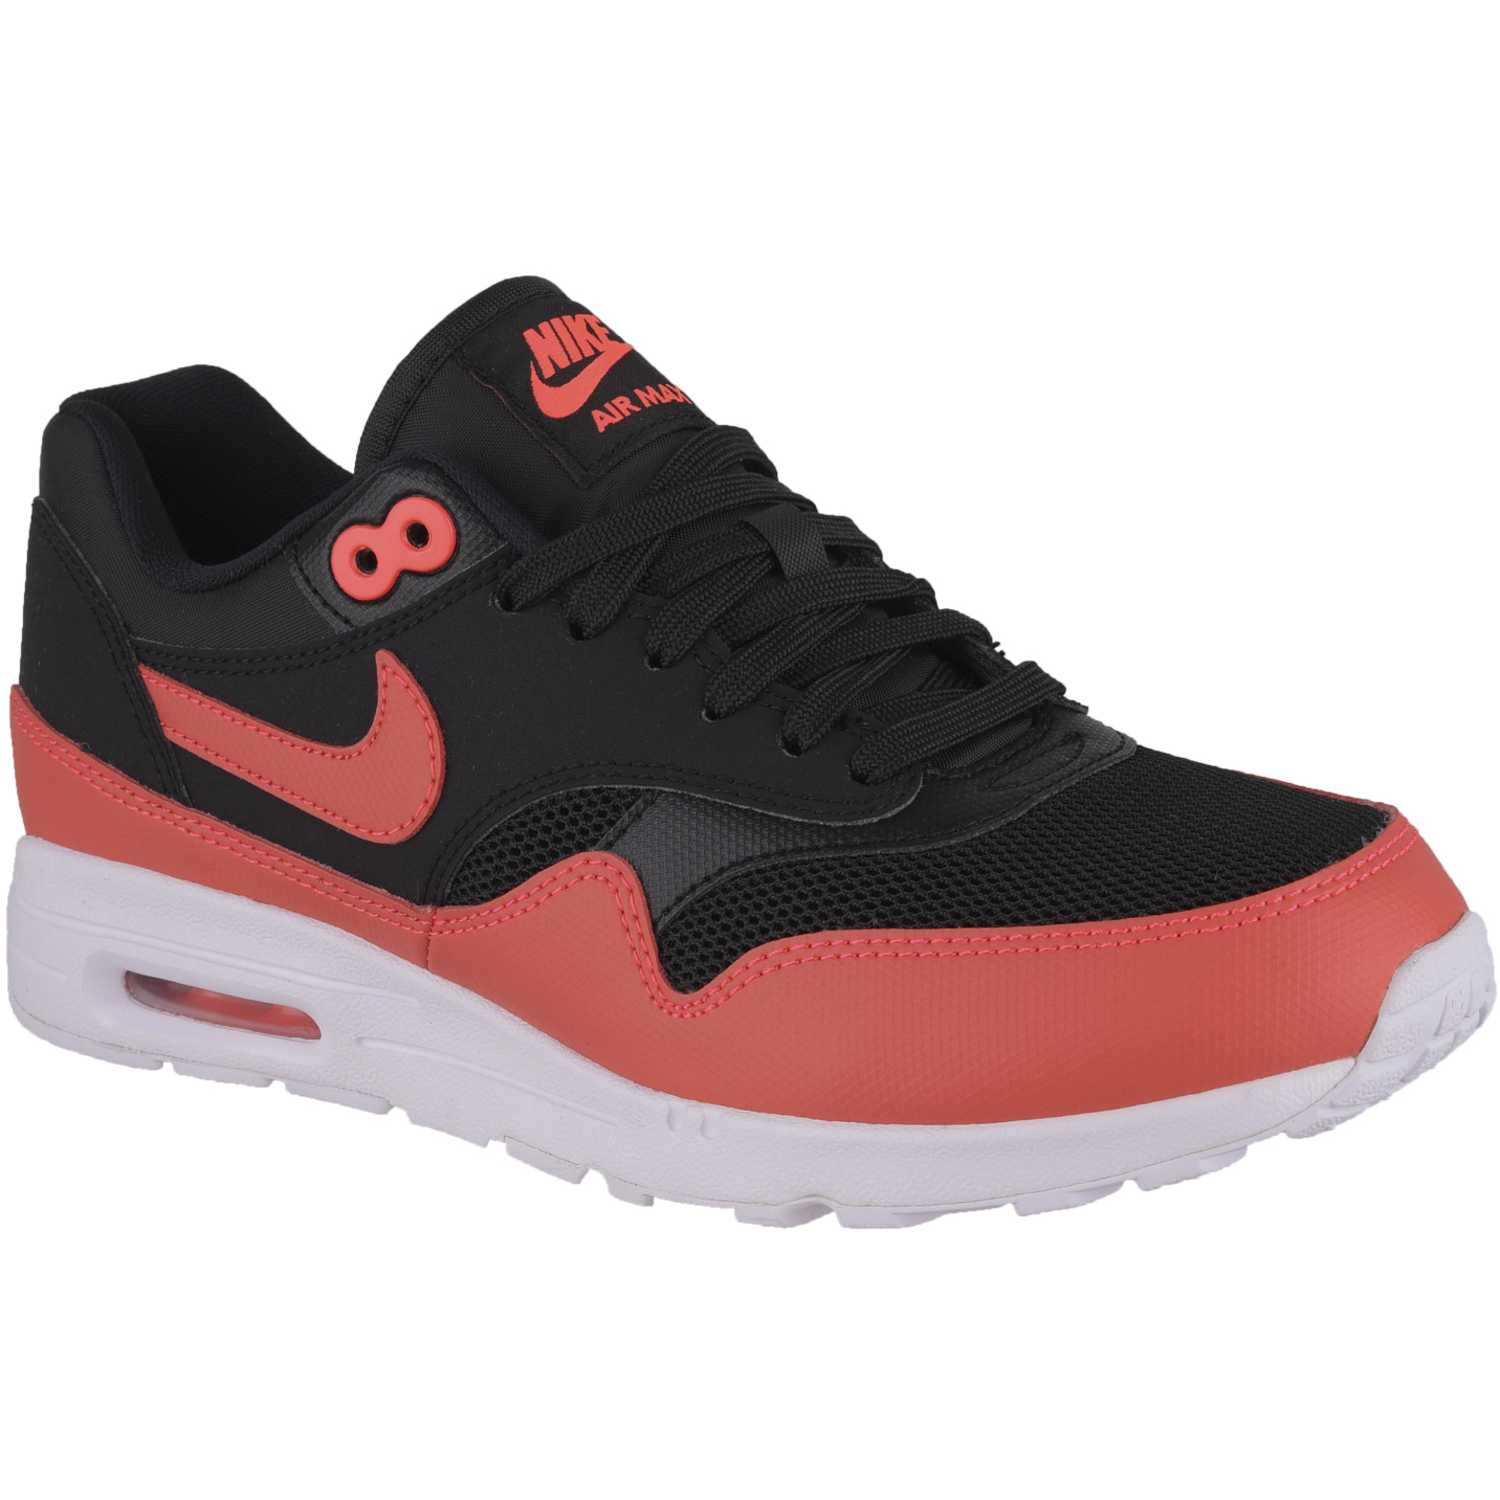 buy online aab92 c3d6c cheap zapatilla de mujer nike negro coral w air max 1 ultra 2.0 bbb87 83280